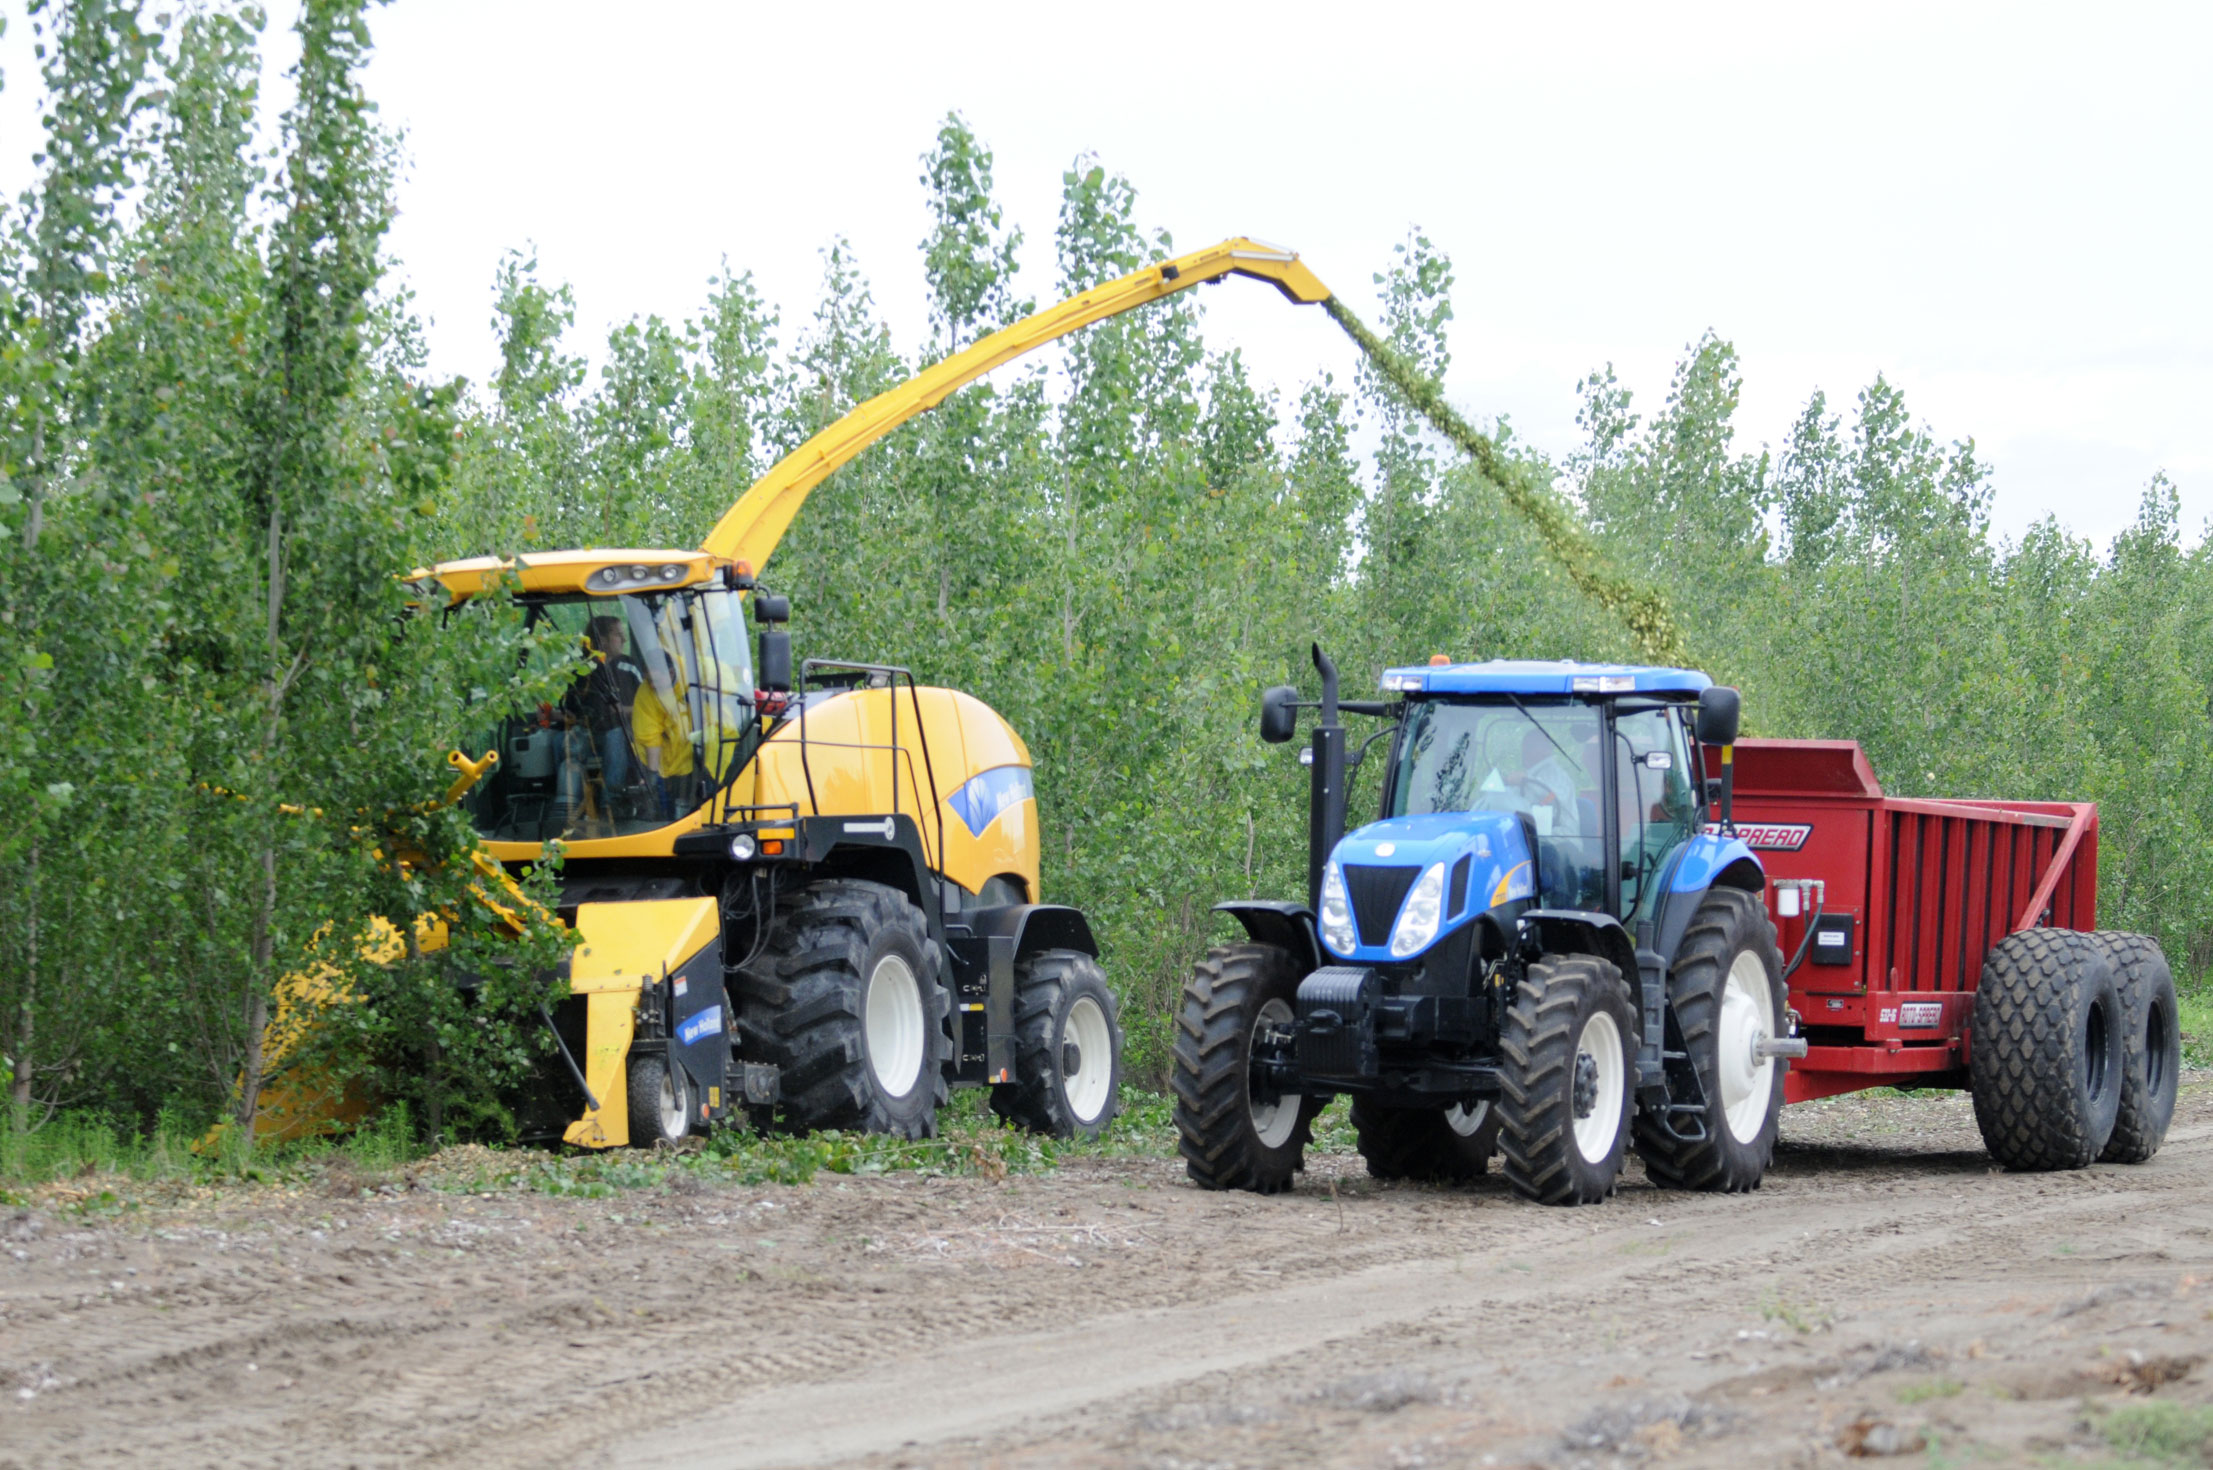 The University of Washington-led project focuses on producing bio-based fuel using feedstock from poplar plantations, such as these being harvested in Oregon on land managed by GreenWood Resources, a key industrial partner on the grant.